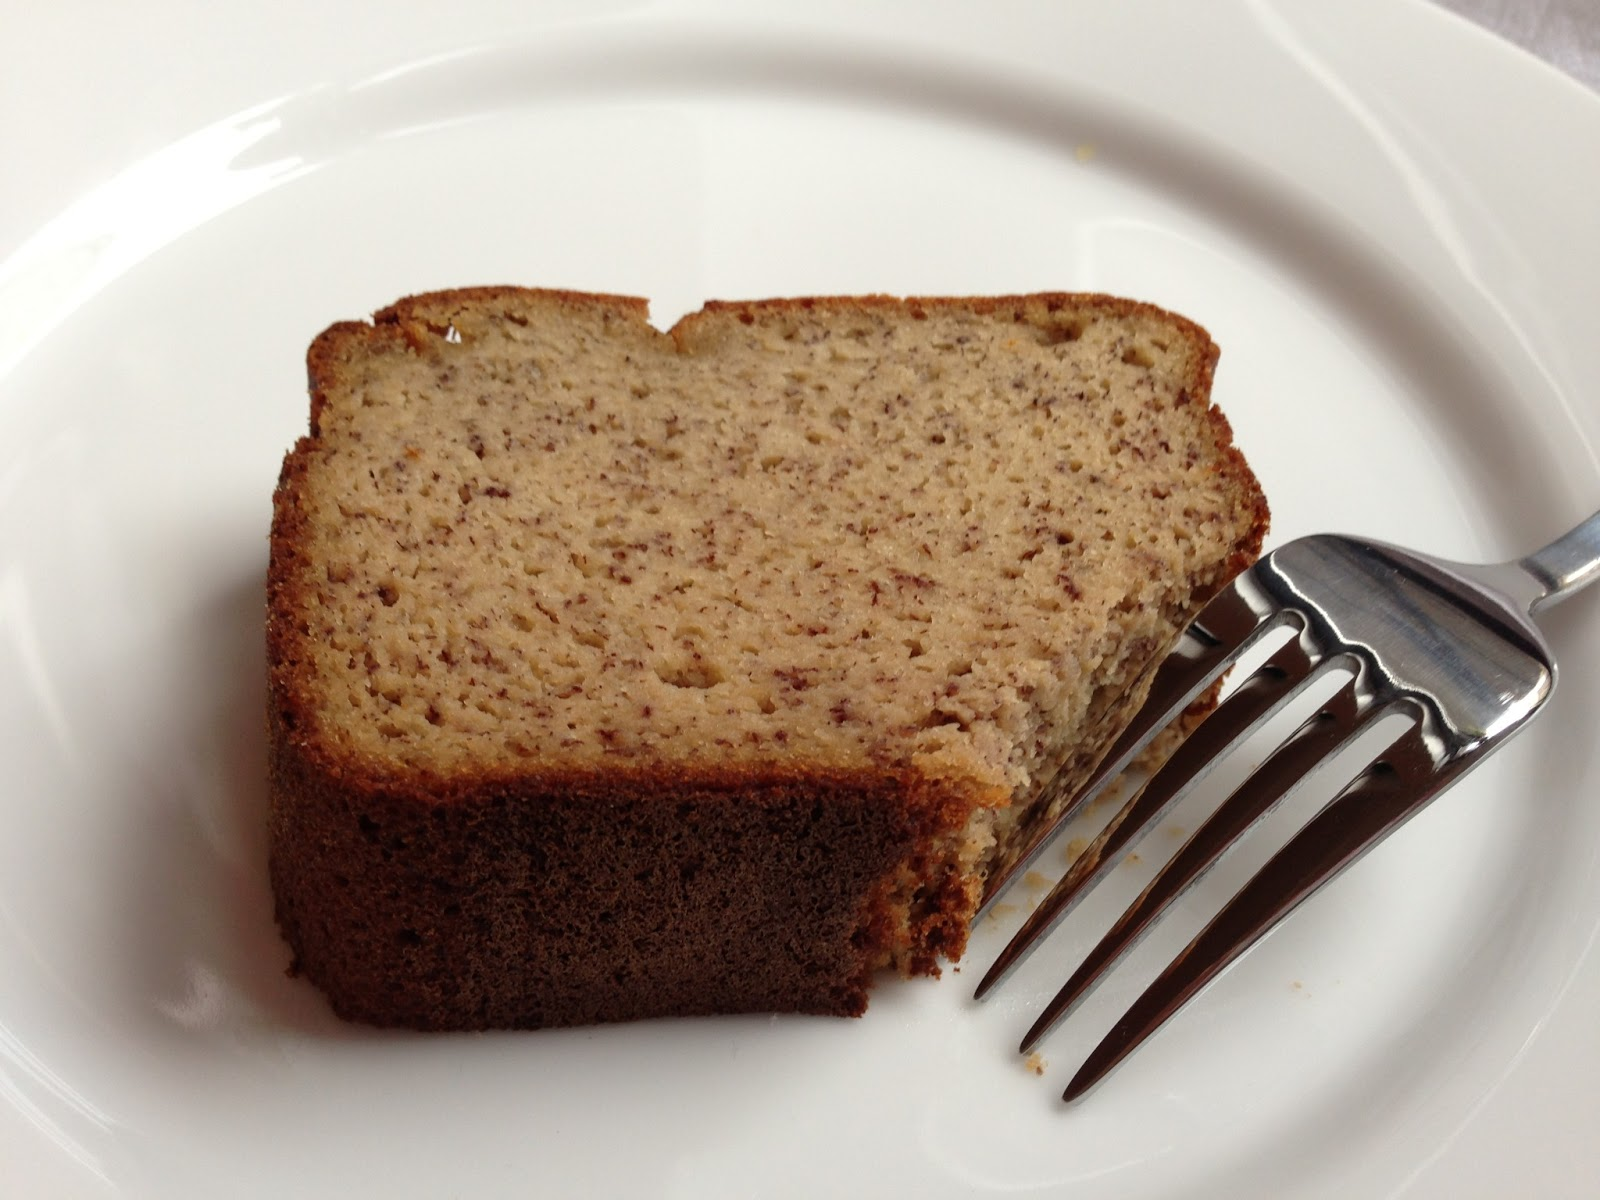 Grain free banana bread kosher for passover forumfinder Images